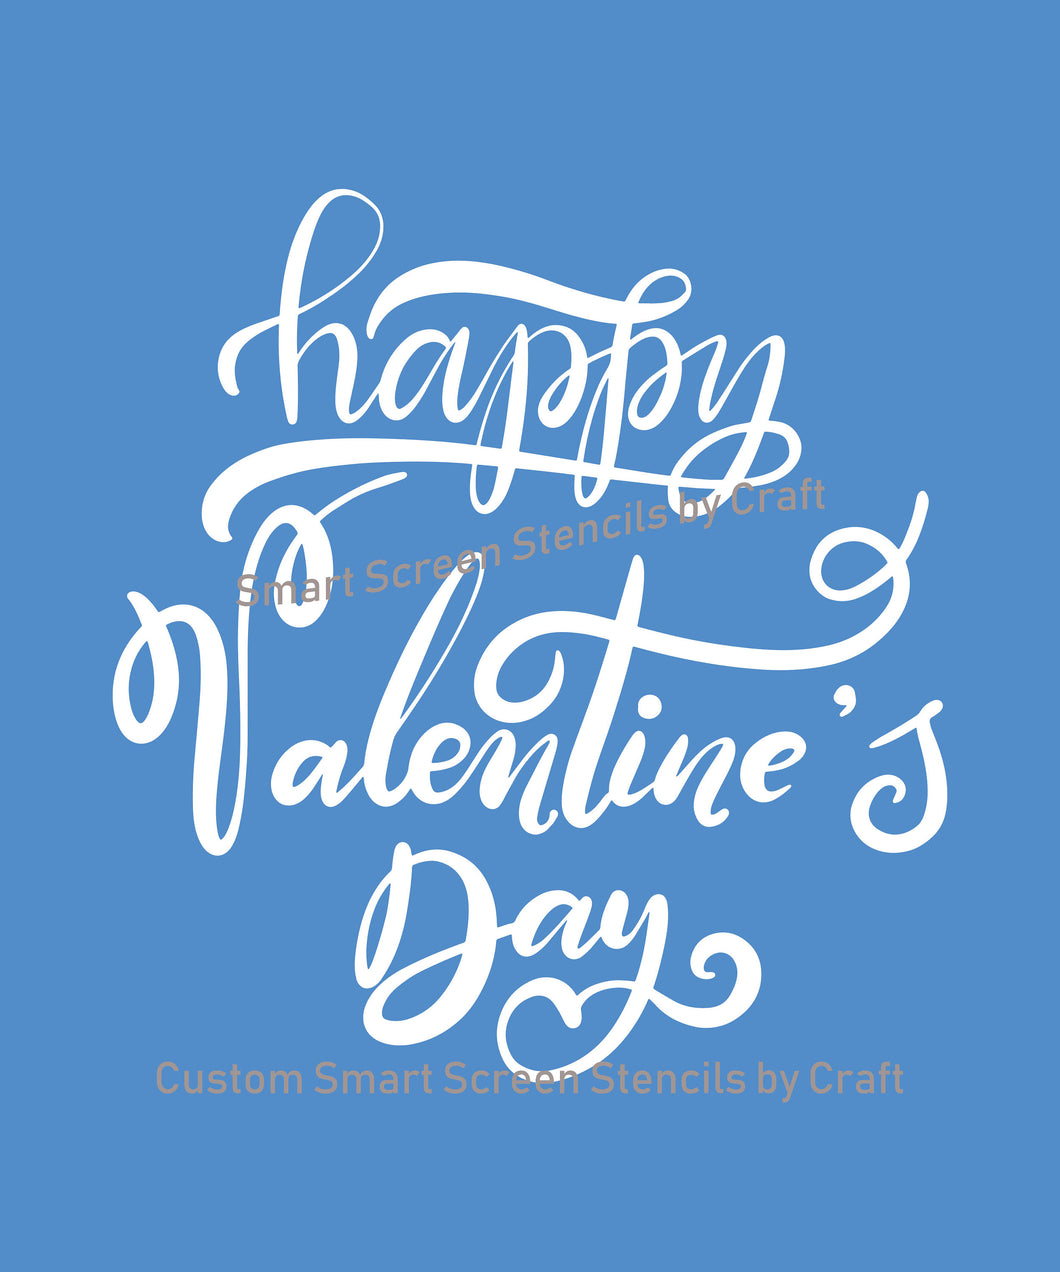 Happy Valentine's Day SmartScreen Stencil - Reusable, Self adhesive - Cards, Glass, Ceramic, Canvas, Fabric, Wood, Plastic, Clay, Metal